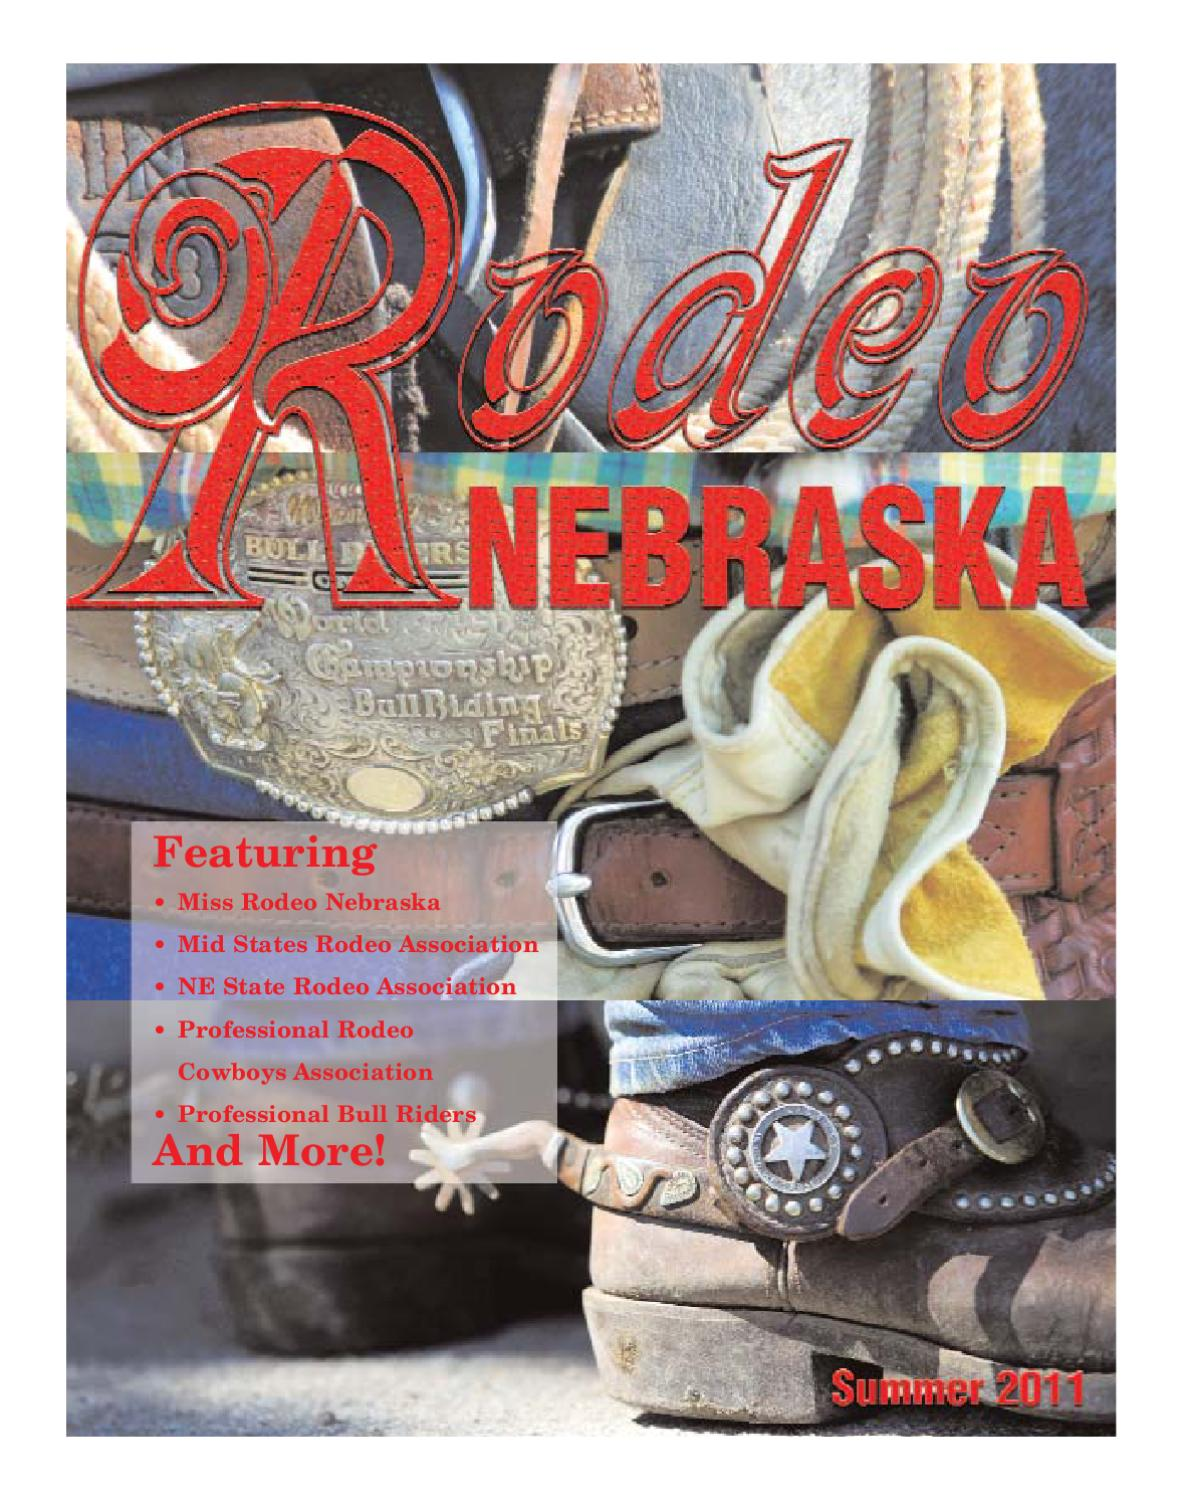 Rodeo Nebraska May 2011 by agNET Content Services - issuu